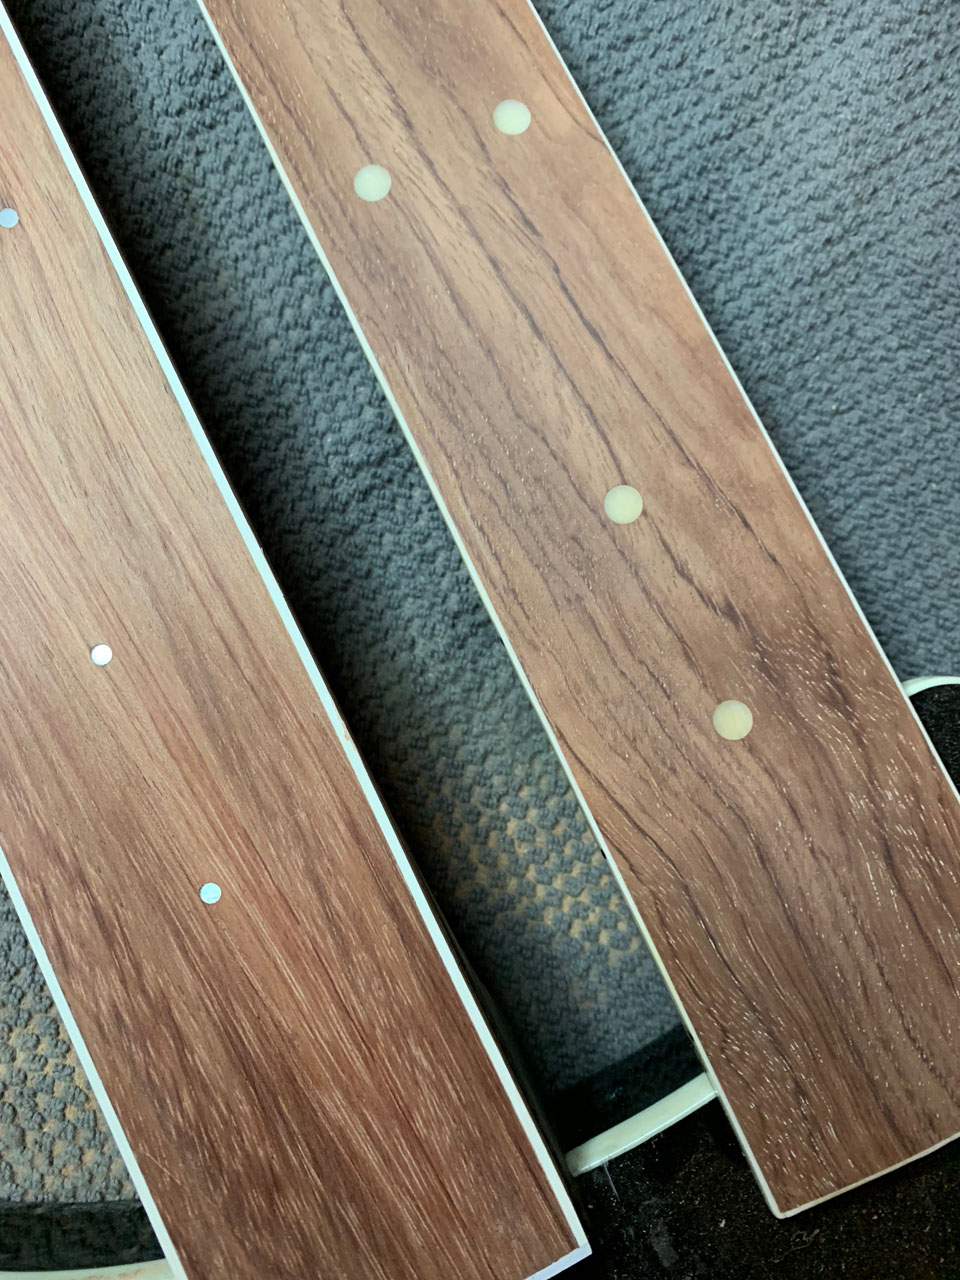 CUSTOMER REQUESTED SMALLER POSITION DOTS; NEW FRETBOARD WAS MADE